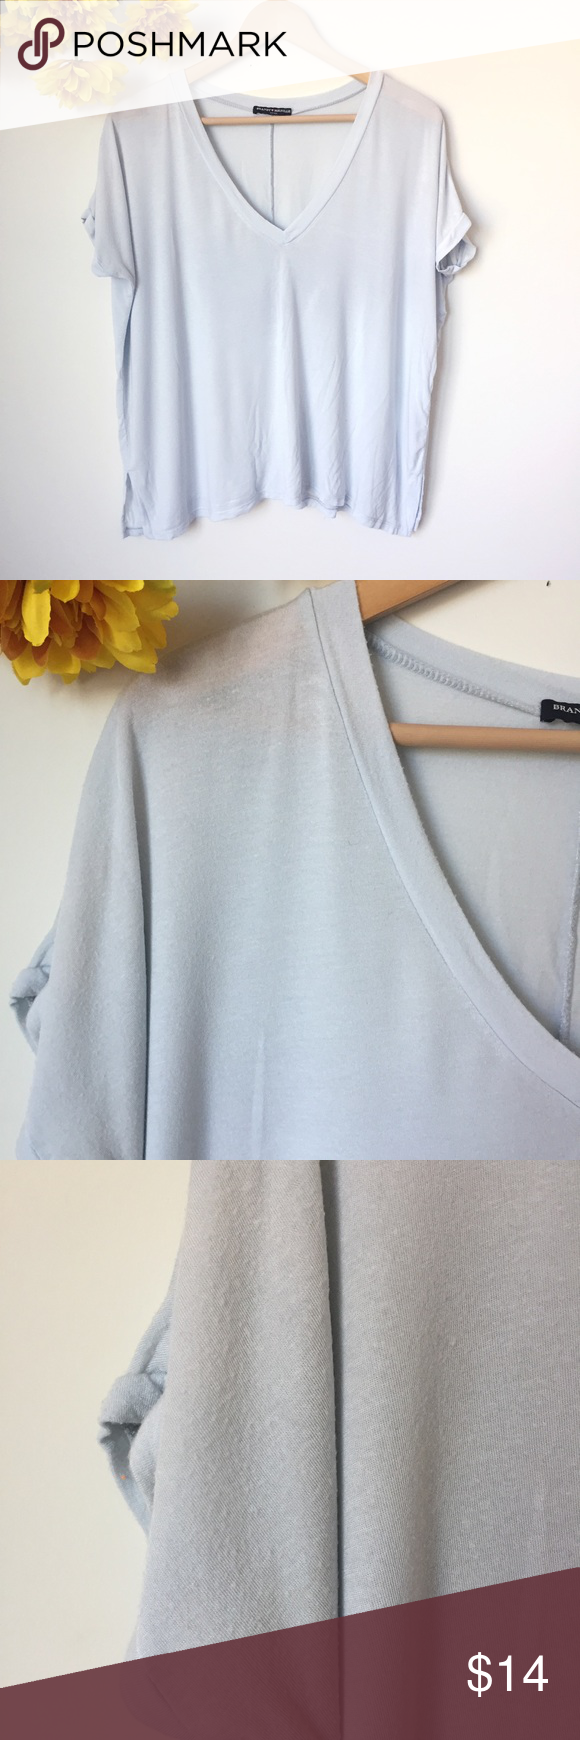 "Brandy Melville Top Flowy, comfy top. Minimal piling. One Size. Length 25"", Bust 26"". Light blue Brandy Melville Tops"